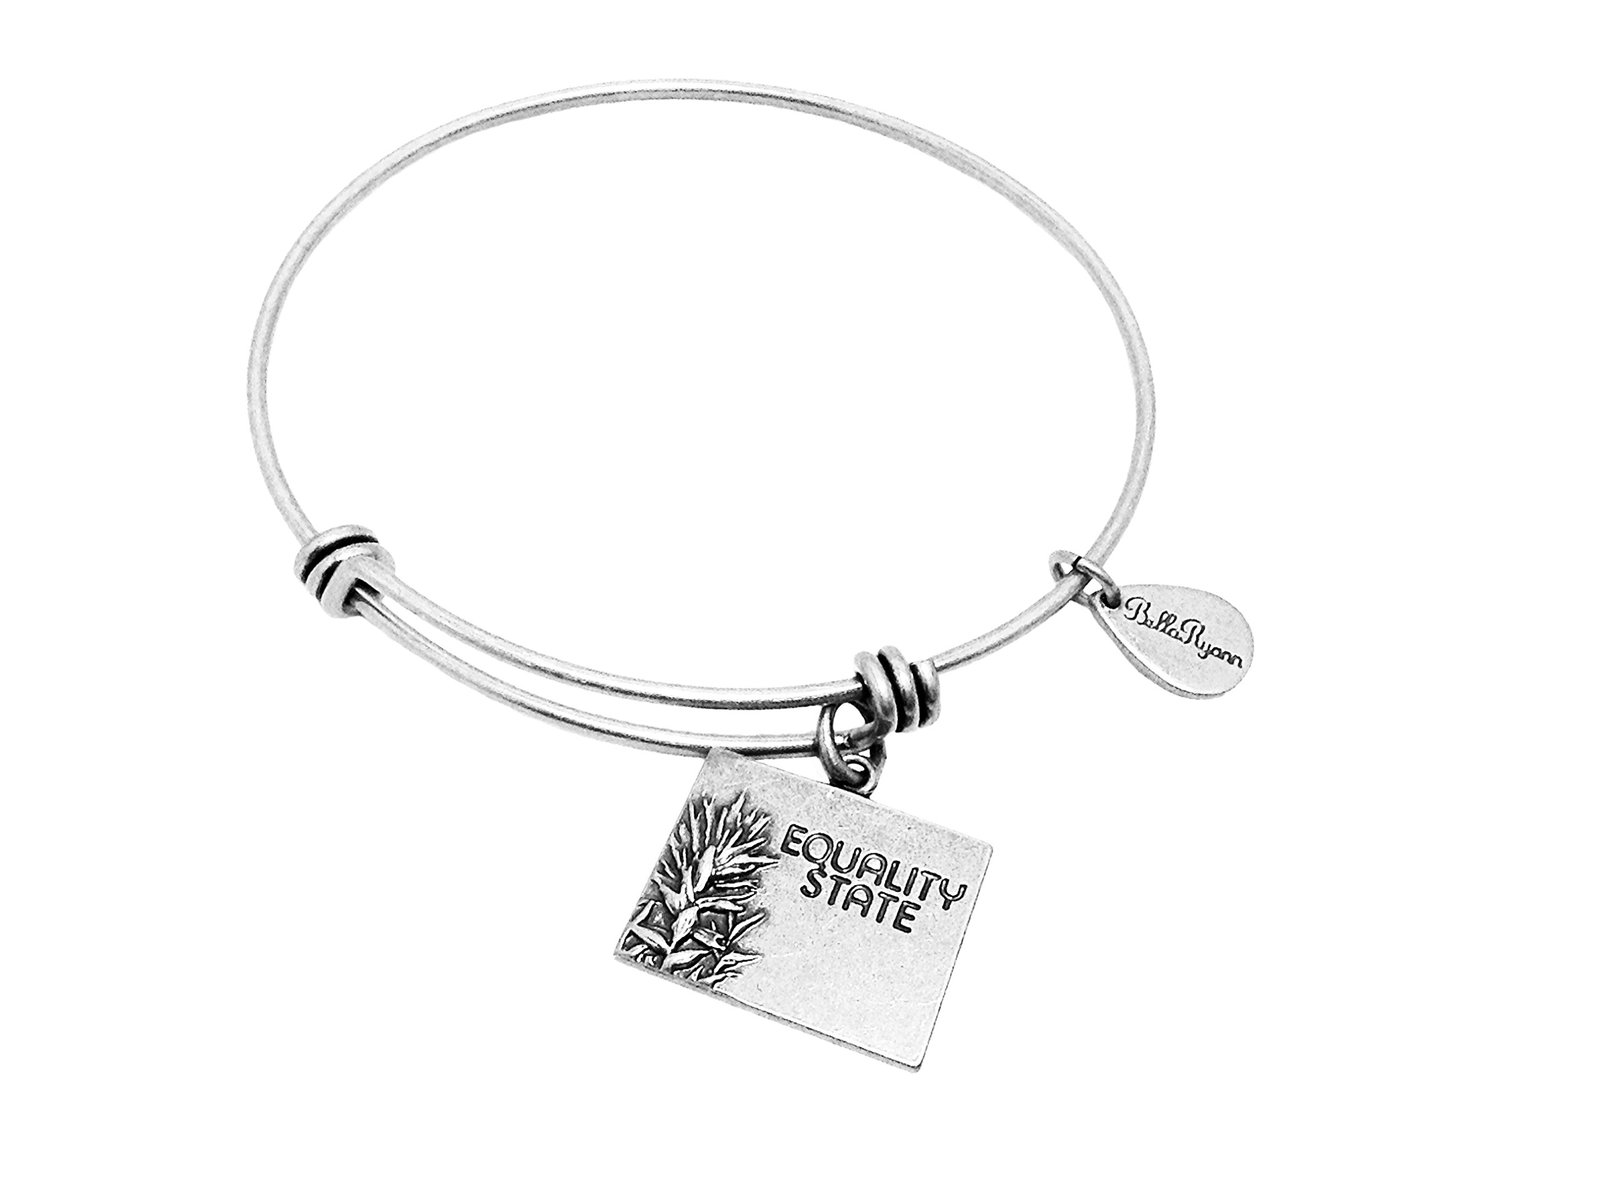 State of Wyoming Charm Bangle Bracelet